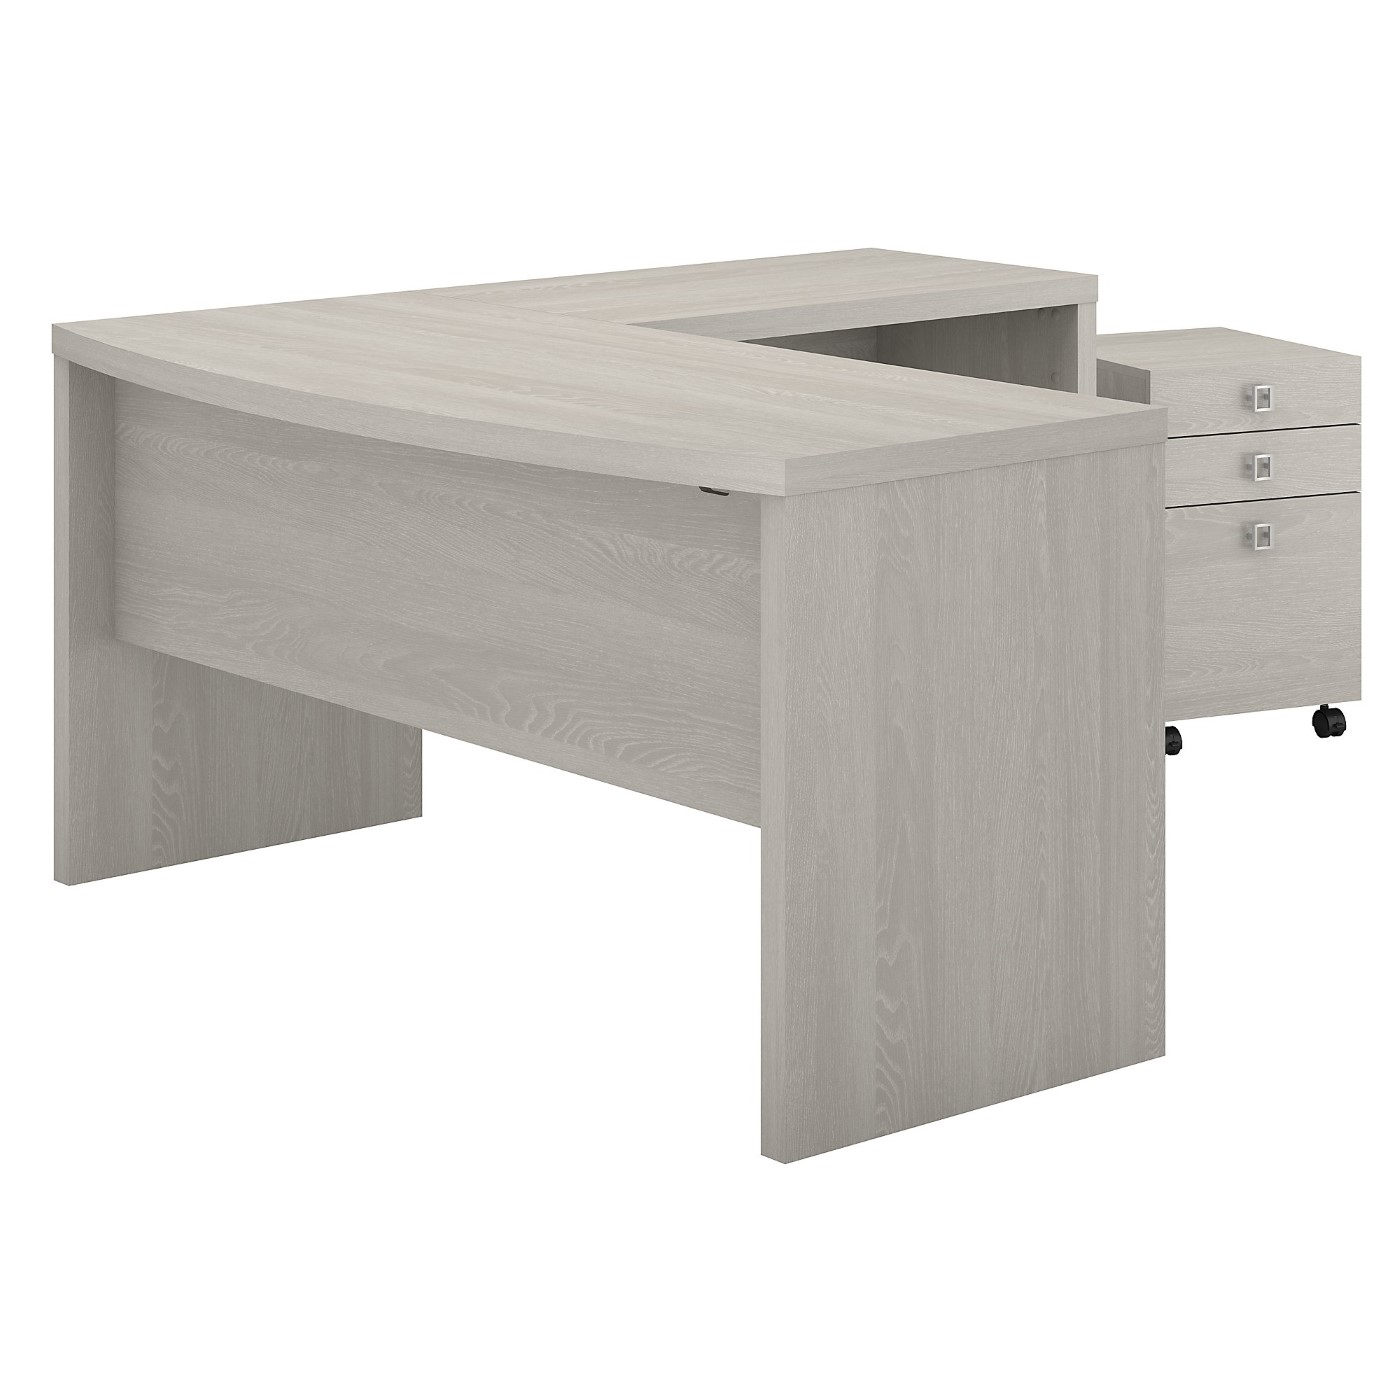 The kathy ireland� Echo L Shaped Bow Front Desk with Mobile File Cabinet is Sustainable Eco Friendly Furniture. Includes Free Shipping! 30H x 72L x 72W.